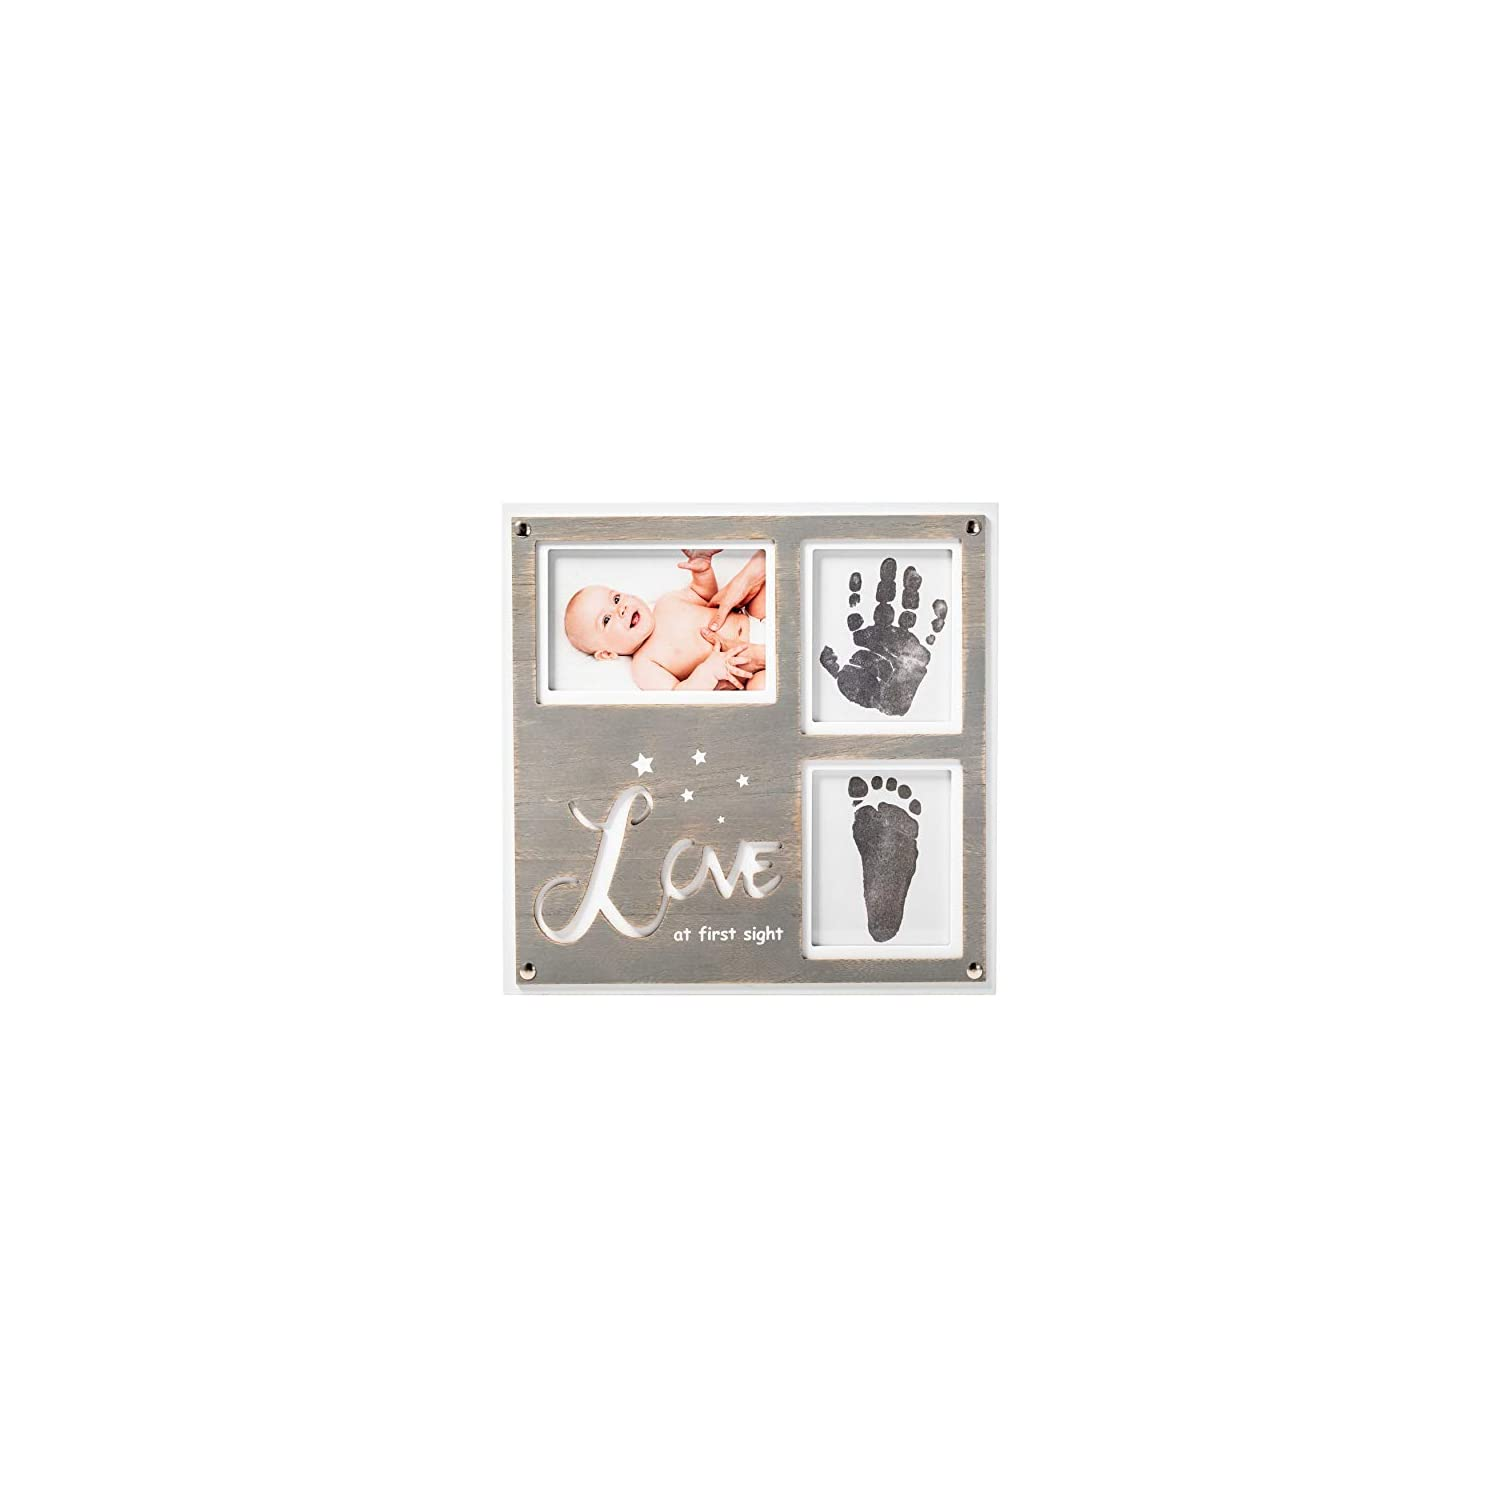 """1Dino Newborn Baby Handprint and Footprint Picture Frame Kit – Special Cut 12.6"""" x 12.2″ White/Grey Wood Frame, Clean-Touch Ink Pad Included, Safe for Baby – Baby's Prints, A Perfect Baby Shower Gift"""